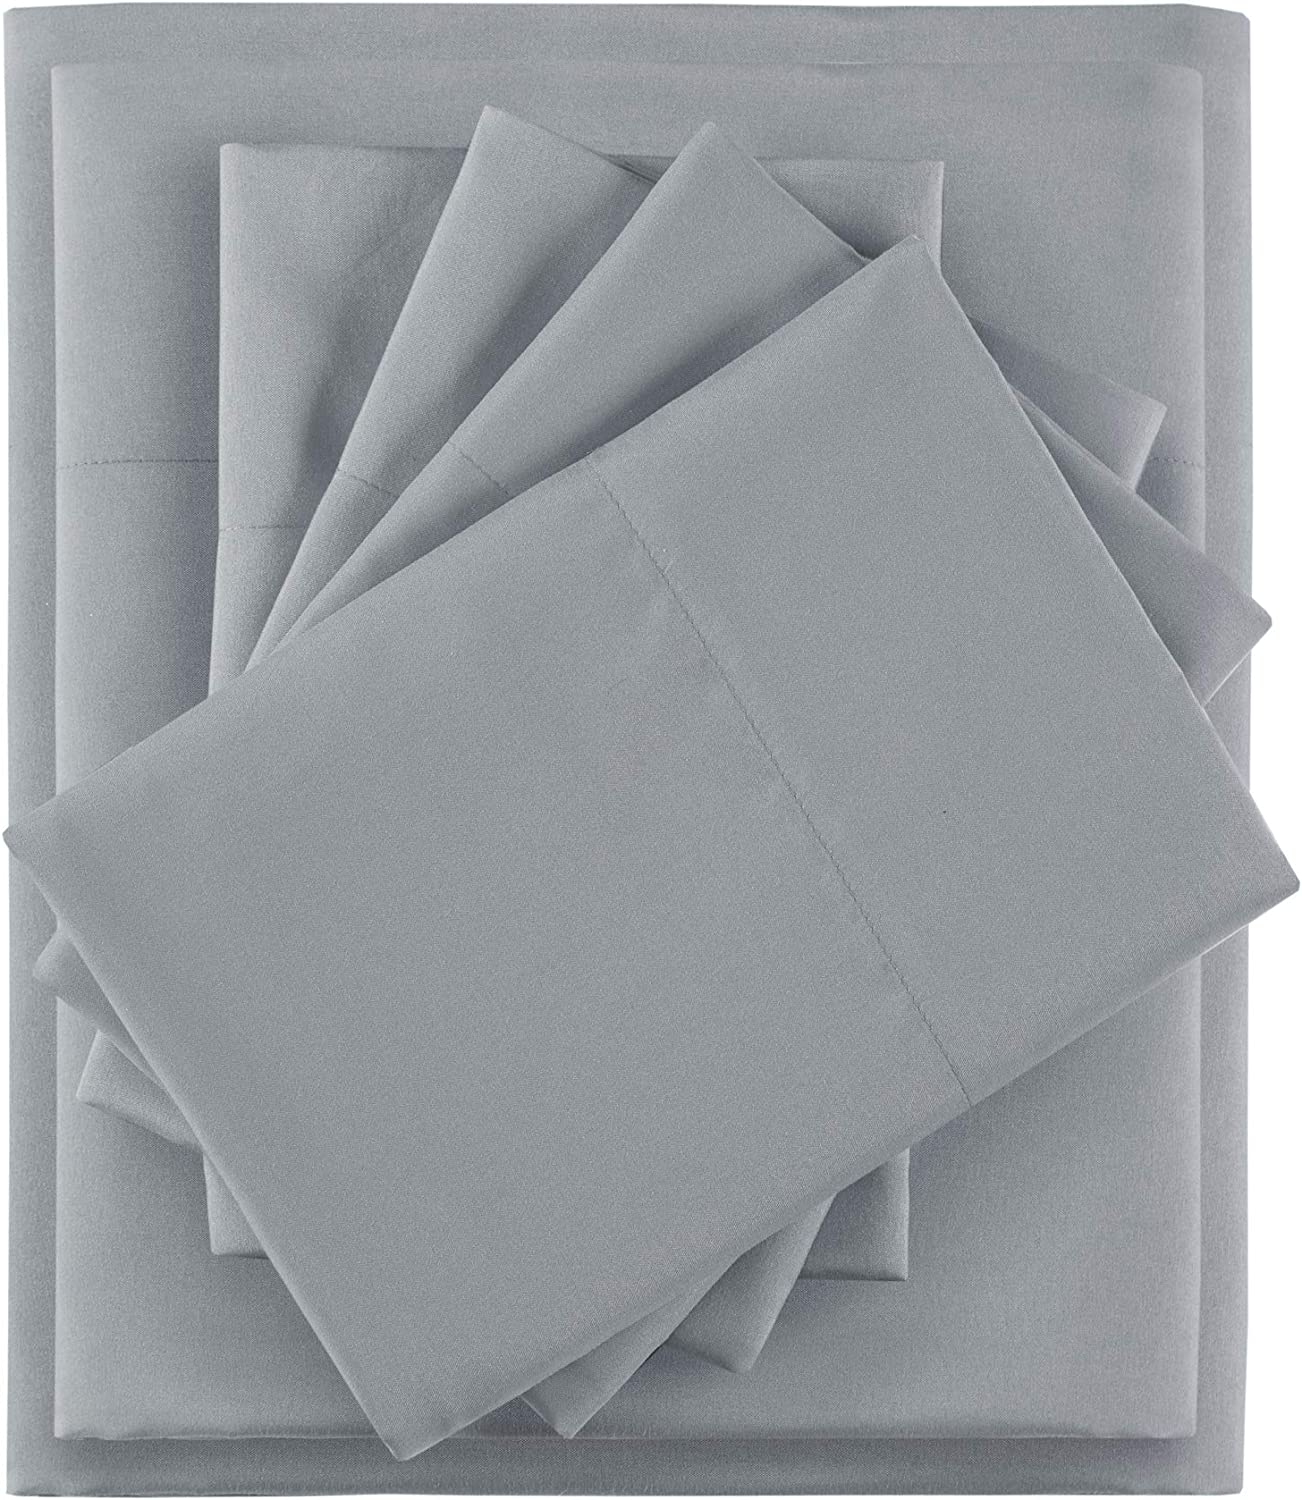 Omaha Mall Intelligent Design Microfiber Sheet Cheap Set Resis Wrinkle with Side